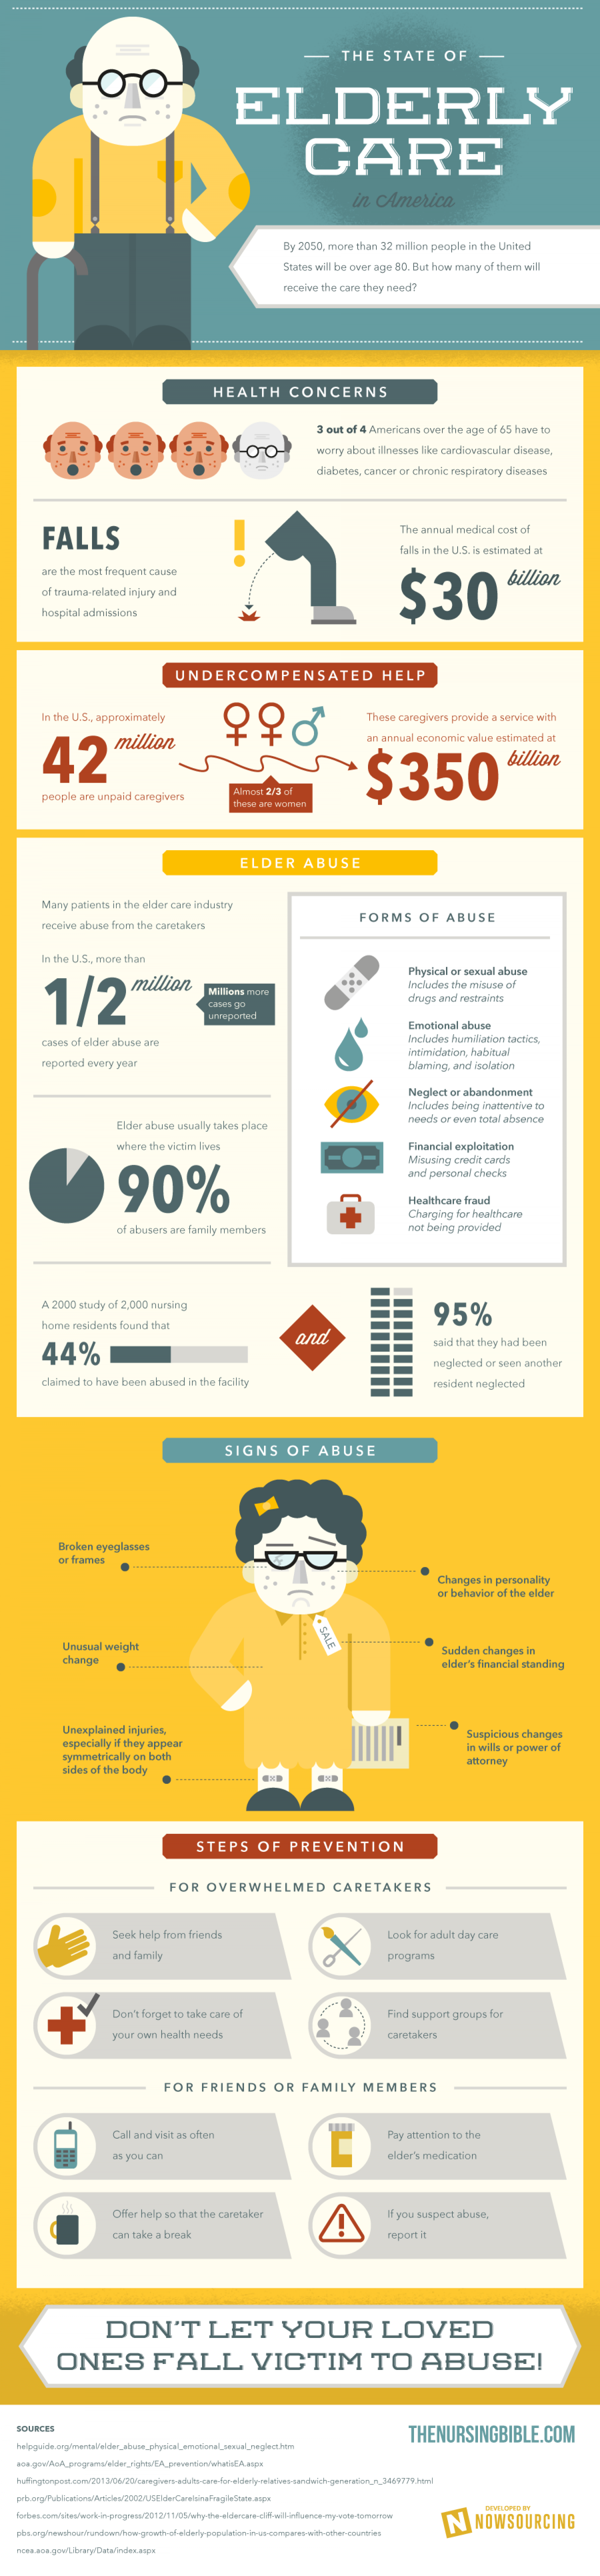 The State of Elderly Care in America Infographic